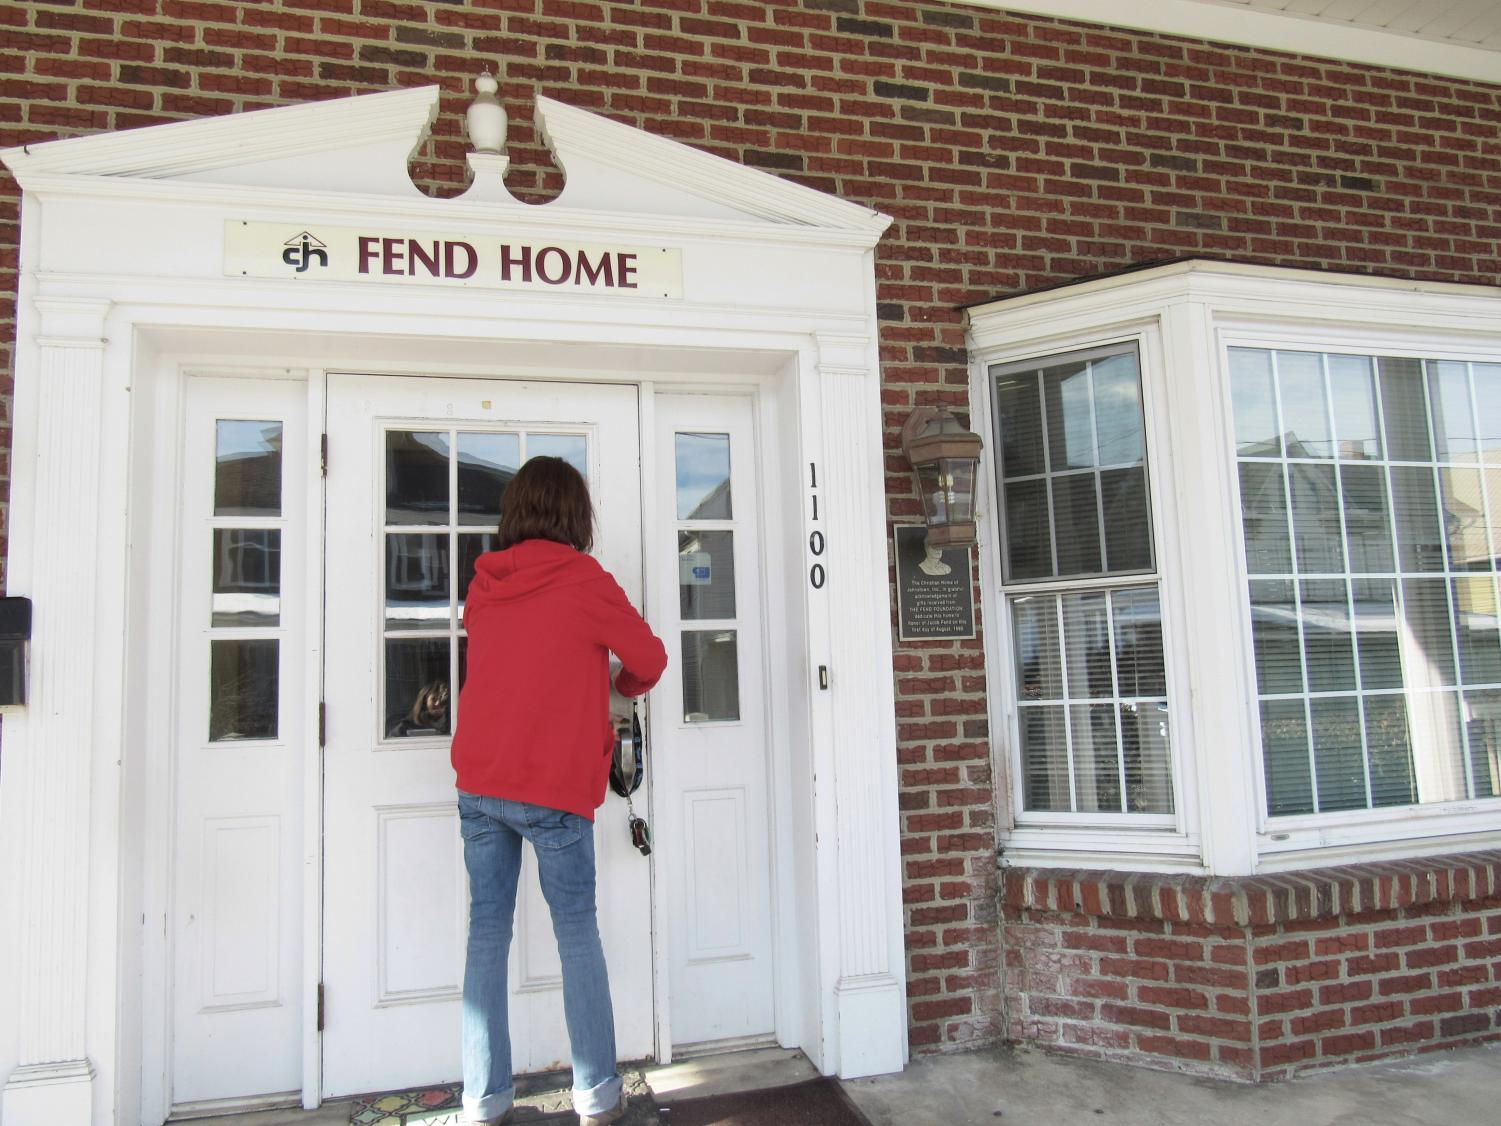 Boy's Home Coordinator Stacey Miorelli unlocks the Fend Home, where the organization's girls find solace.